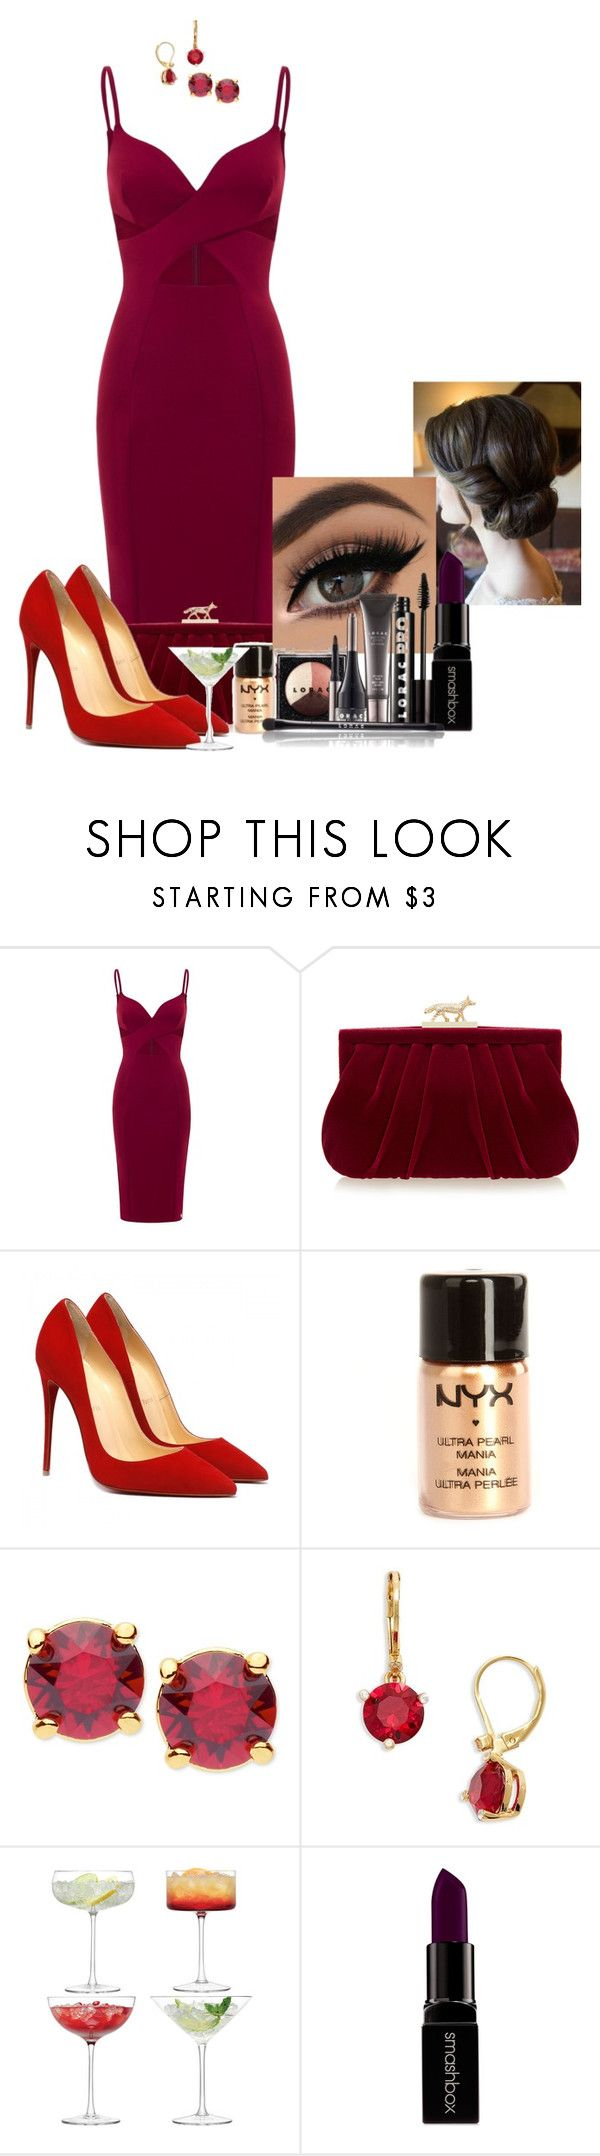 """""""Samuel Oliver - Keating foundation ball"""" by huntress-383 ❤ liked on Polyvore featuring Aloura London, Wilbur & Gussie, NYX, Anne Klein, Kate Spade, LSA International, Smashbox and LORAC"""